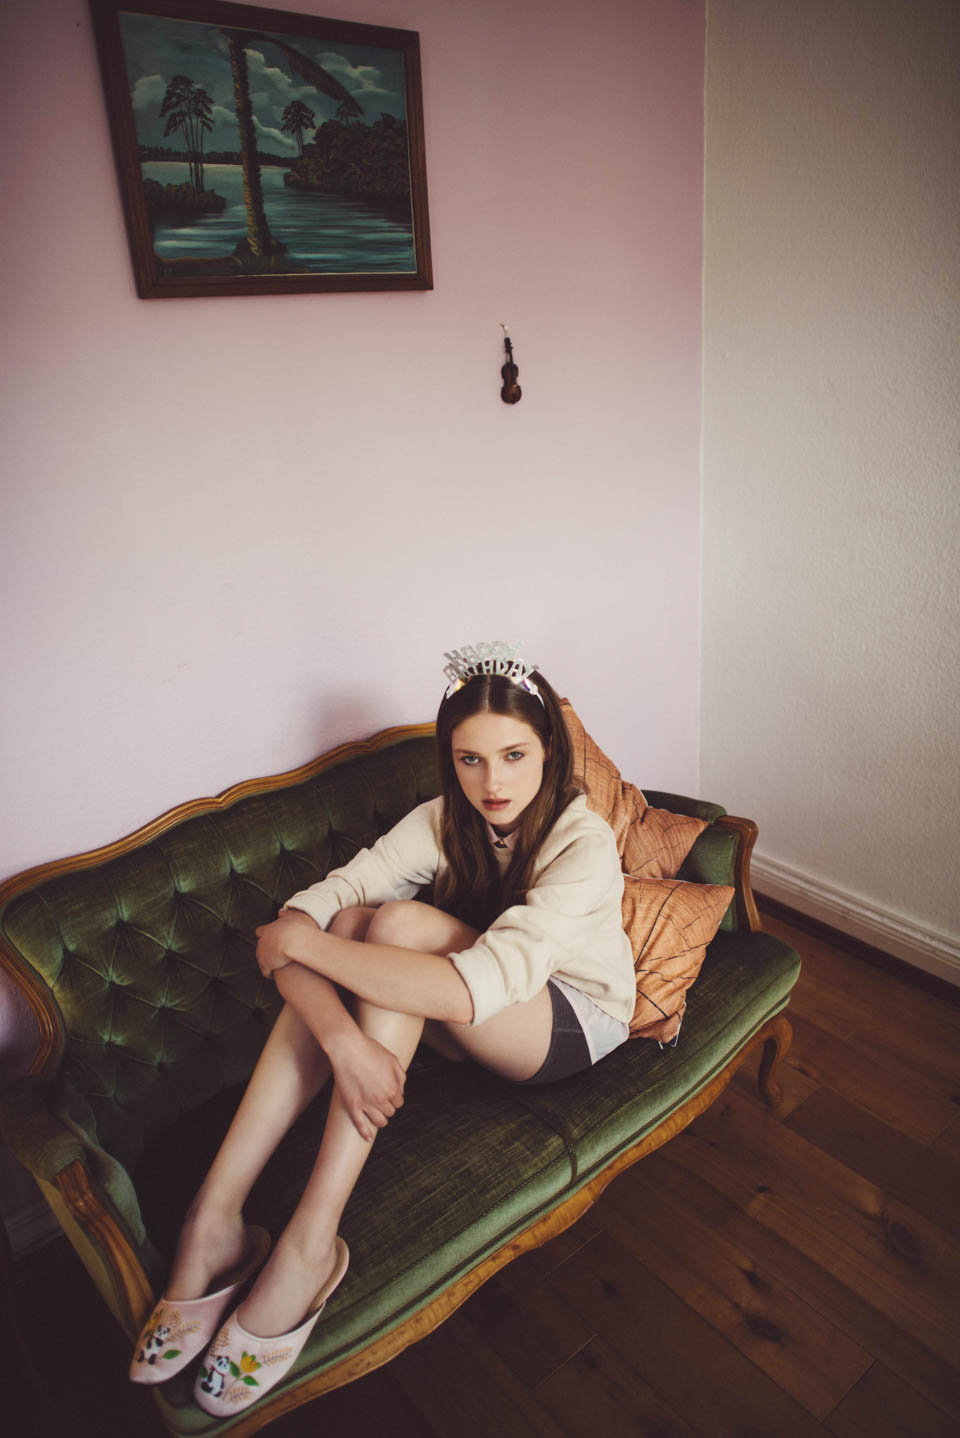 fashion editorial for cake magazine shot in cologne germany by fashion photographer erika astrid_4.jpg